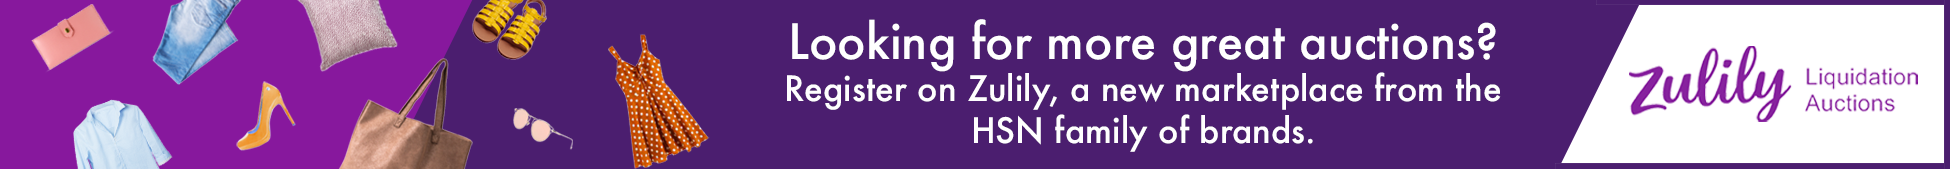 Zulily Liquidation Auctions Launch More from the HSN Family